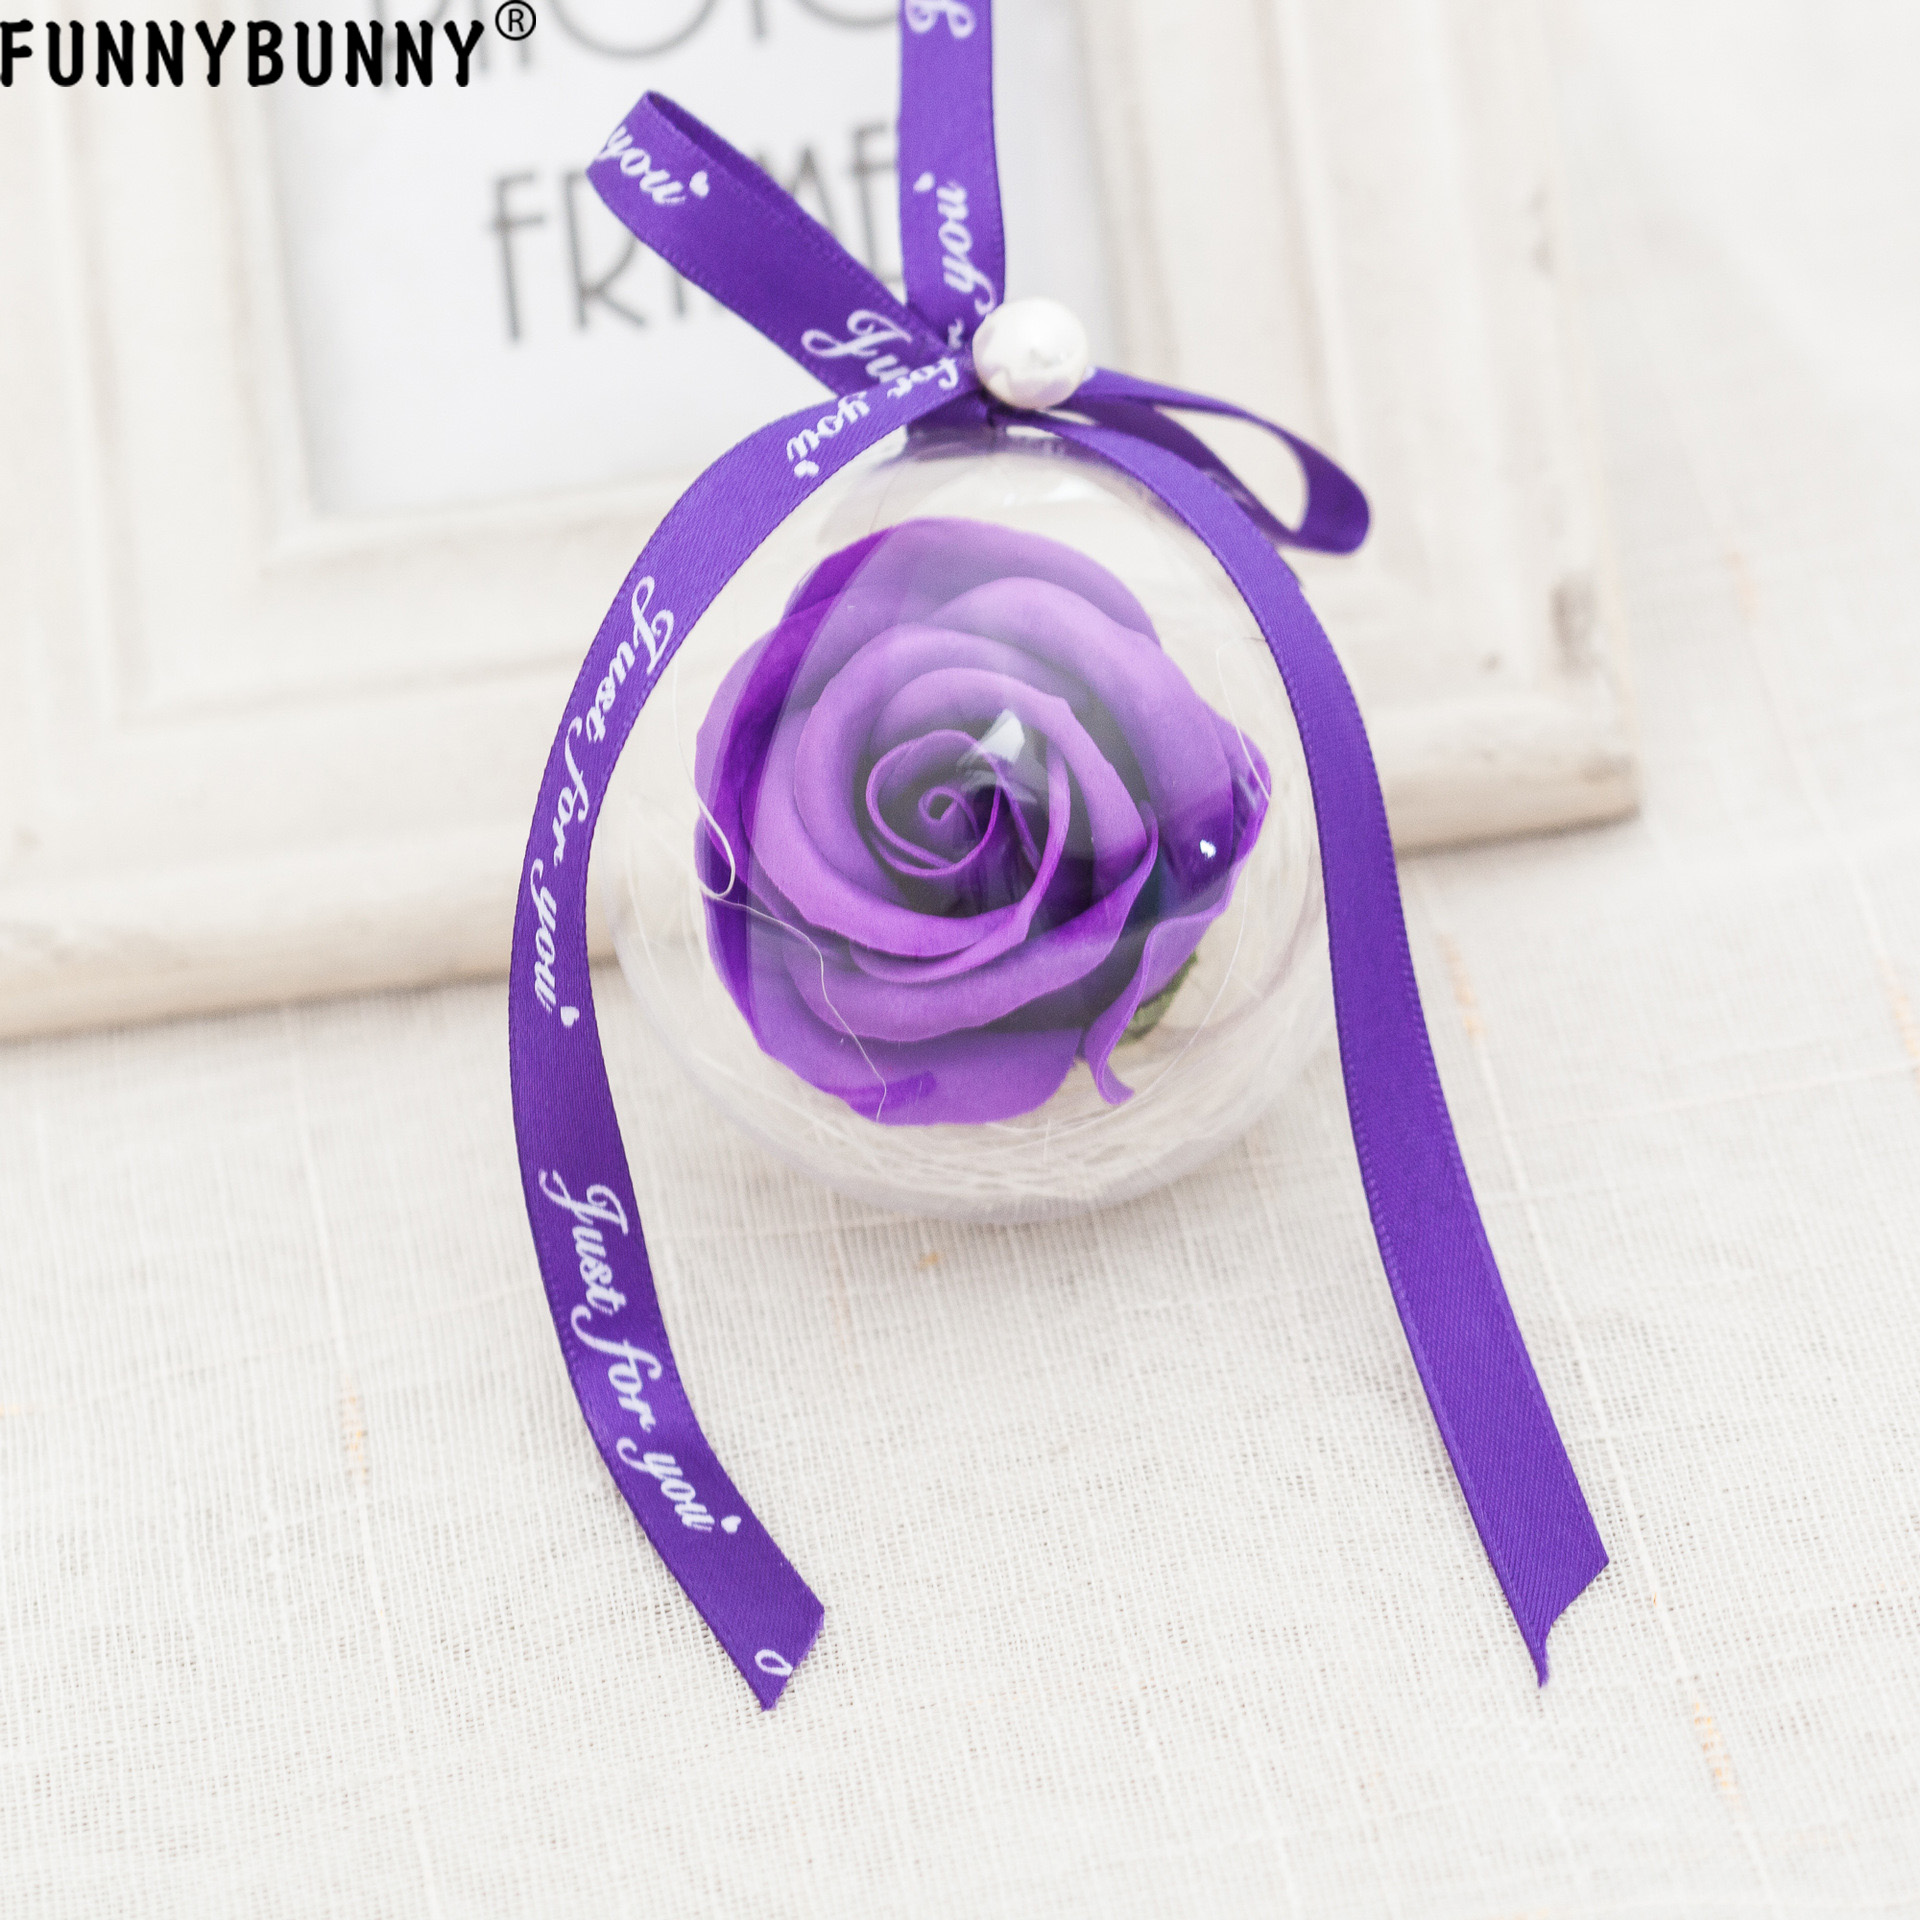 FUNNYBUNNY Clear Ball Ornaments Plastic Christmas Tree Decorations Decorative Balls Rose in Ball Ornaments from Home Garden